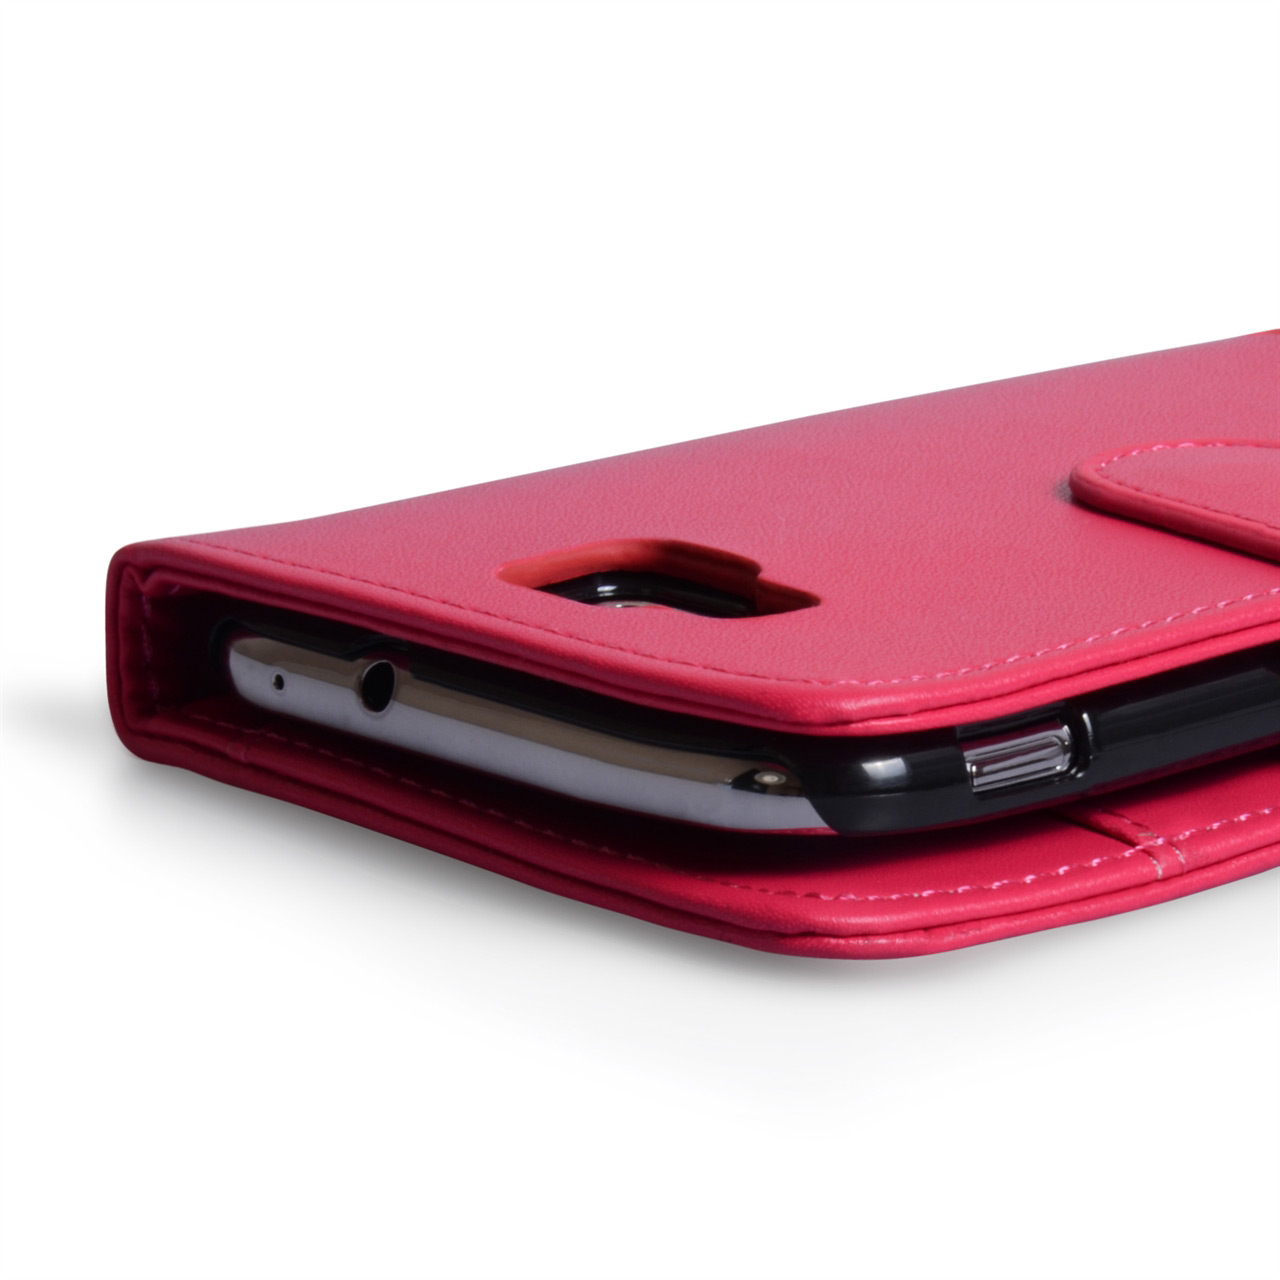 YouSave Accessories Samsung Ativ S Hot Pink Leather Effect Wallet Case